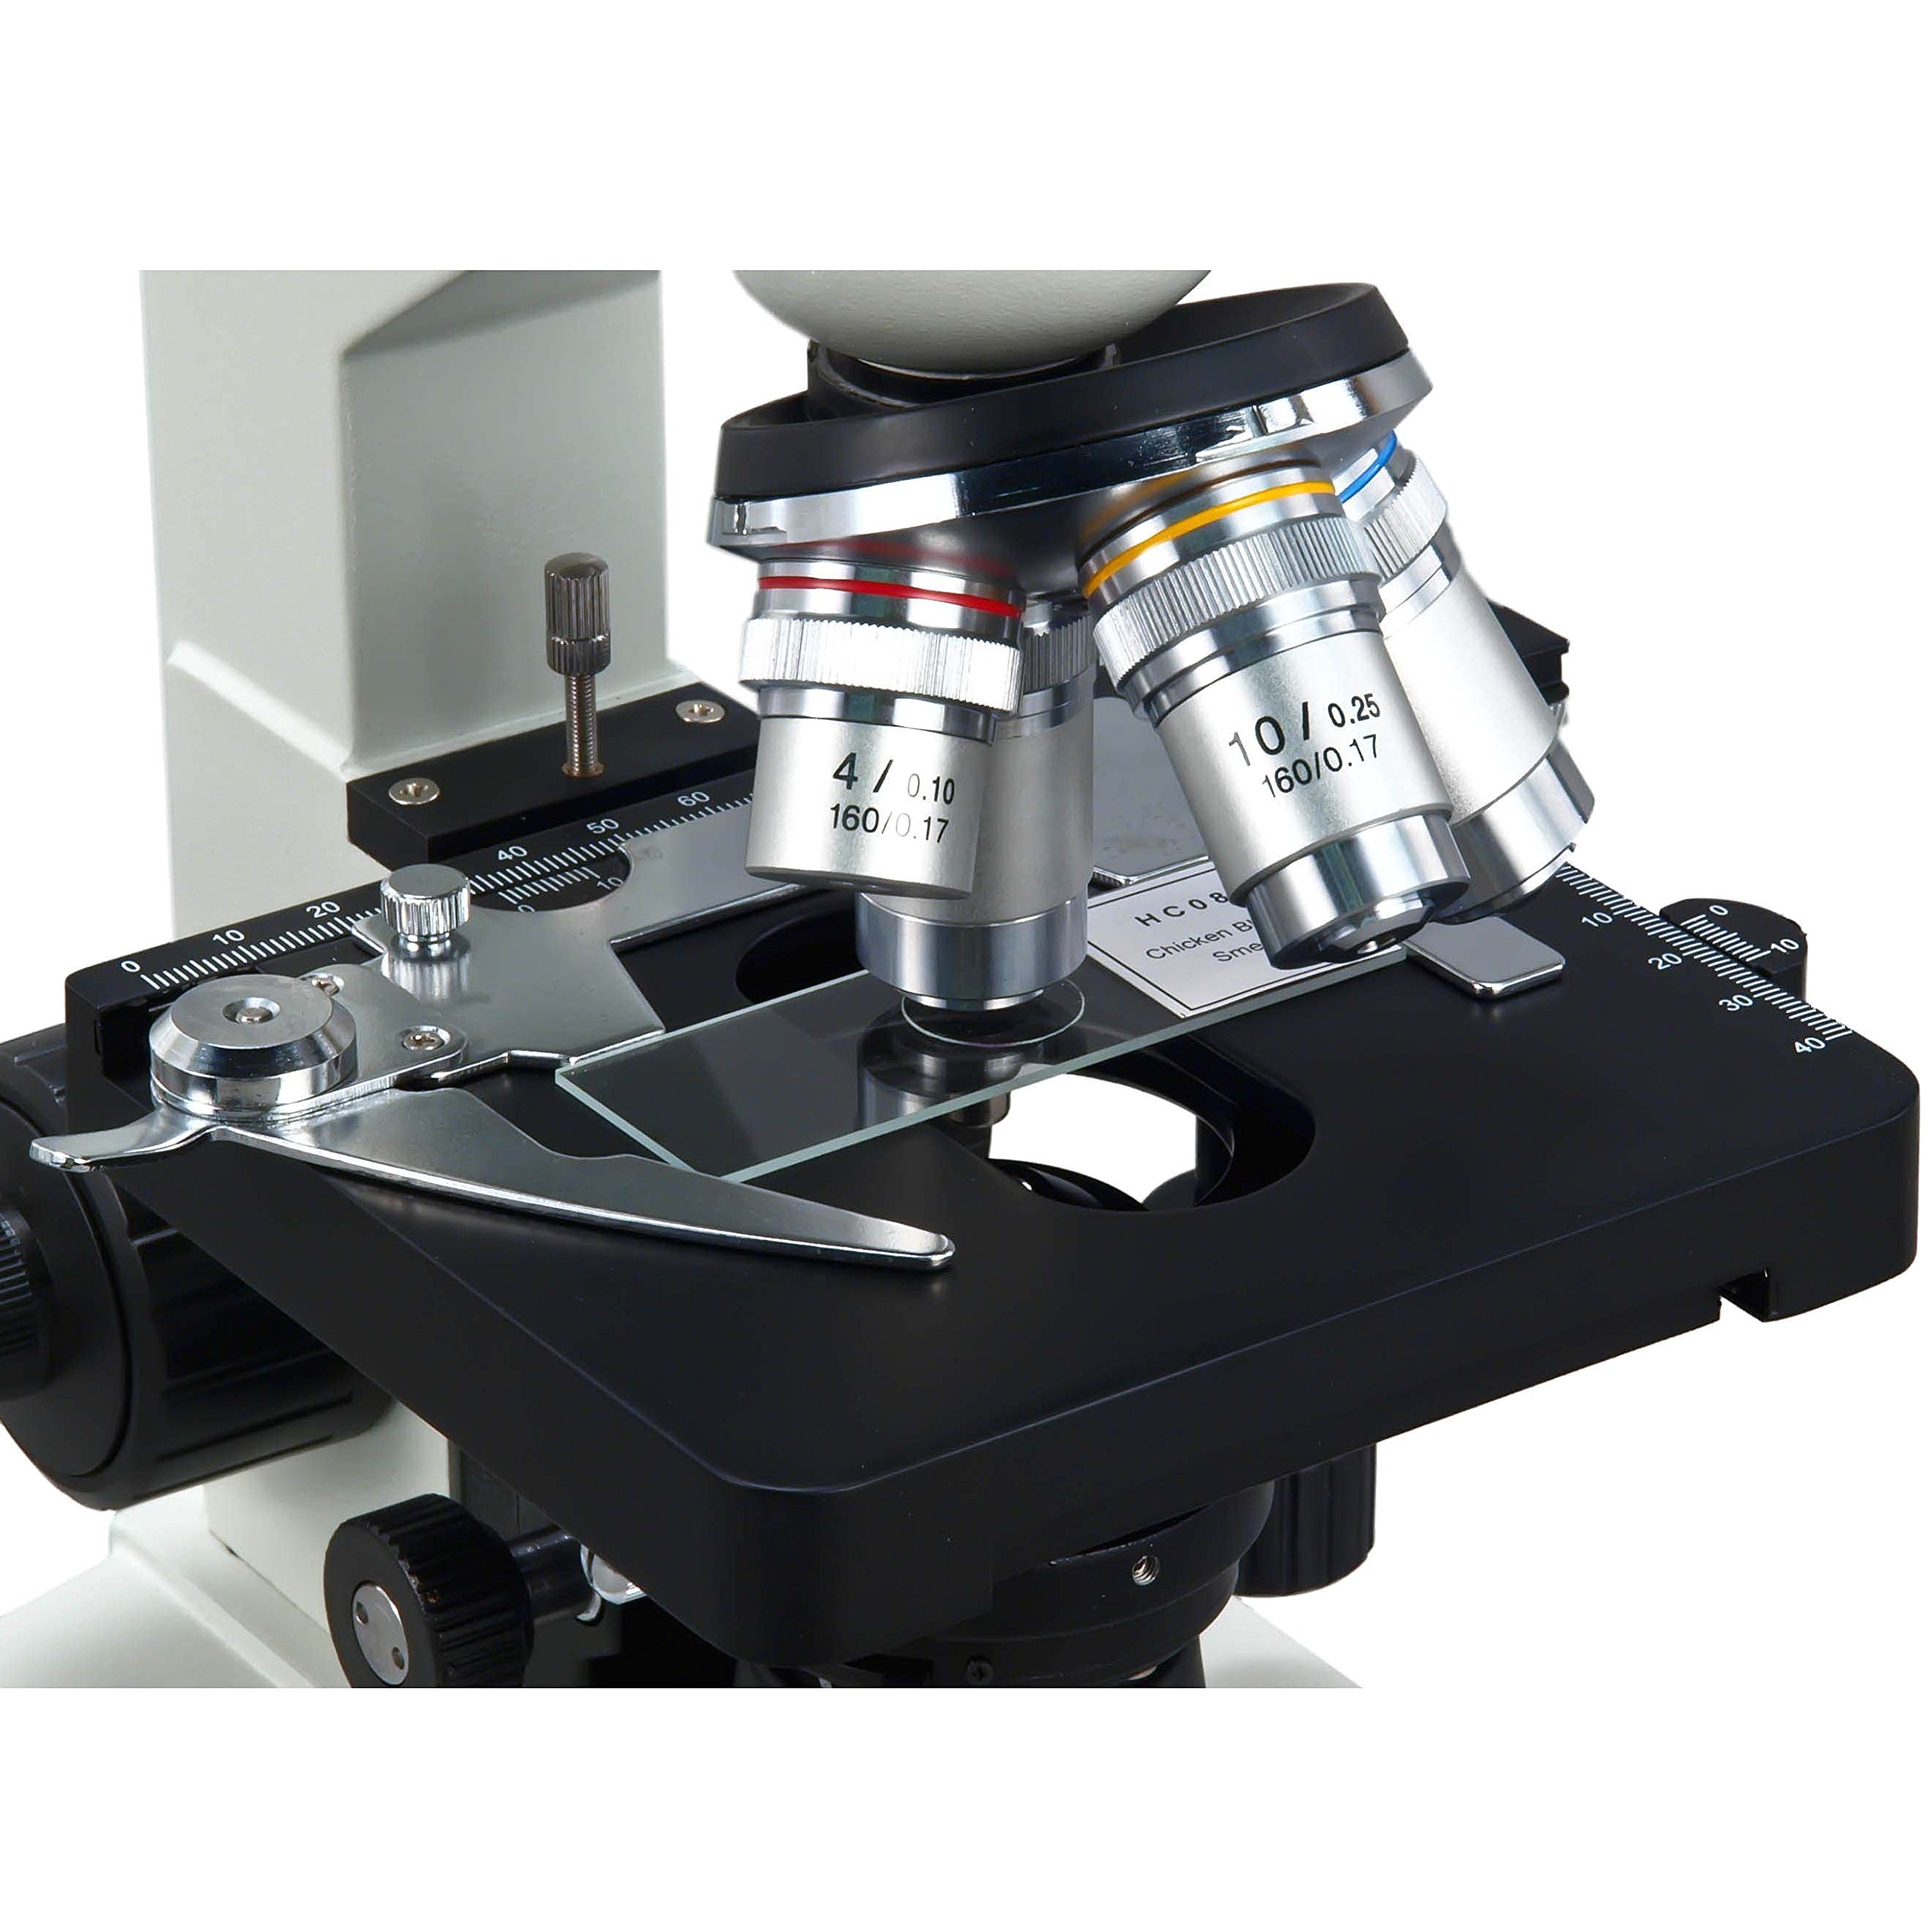 OMAX 40X-2500X LED Digital Trinocular Lab Compound Microscope with USB Camera and Mechanical Stage by OMAX (Image #4)